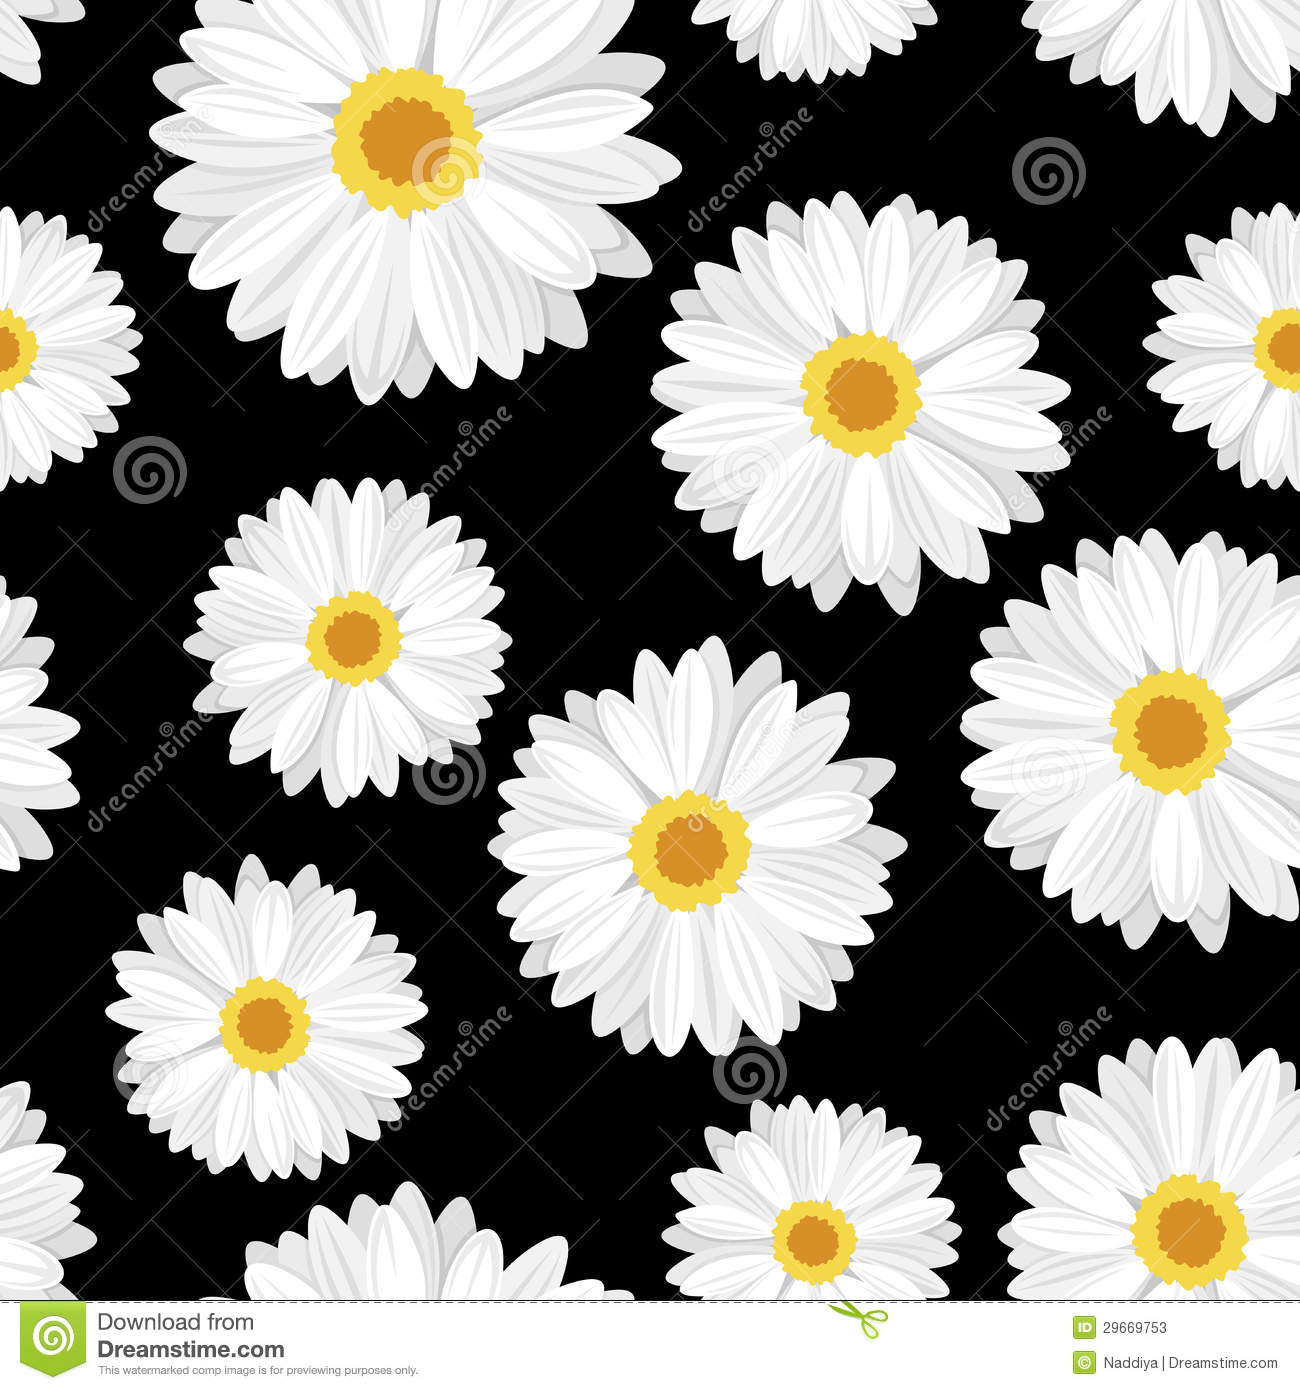 Daisy Flower Black And White Wallpaper Vector Seamless background